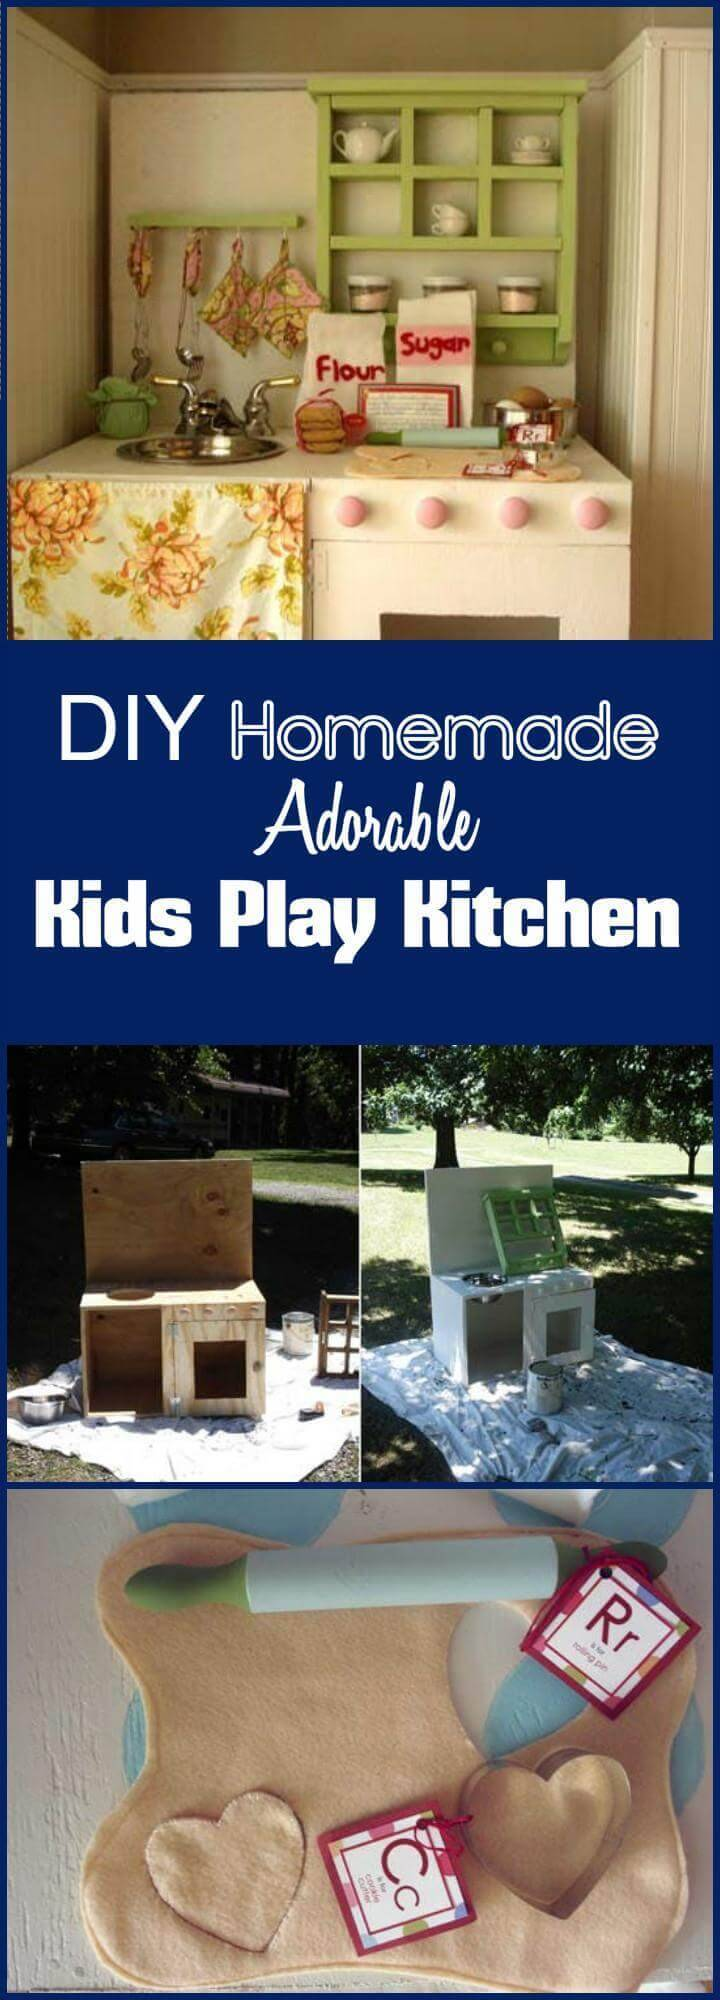 DIY handmade adorable kids play kitchen